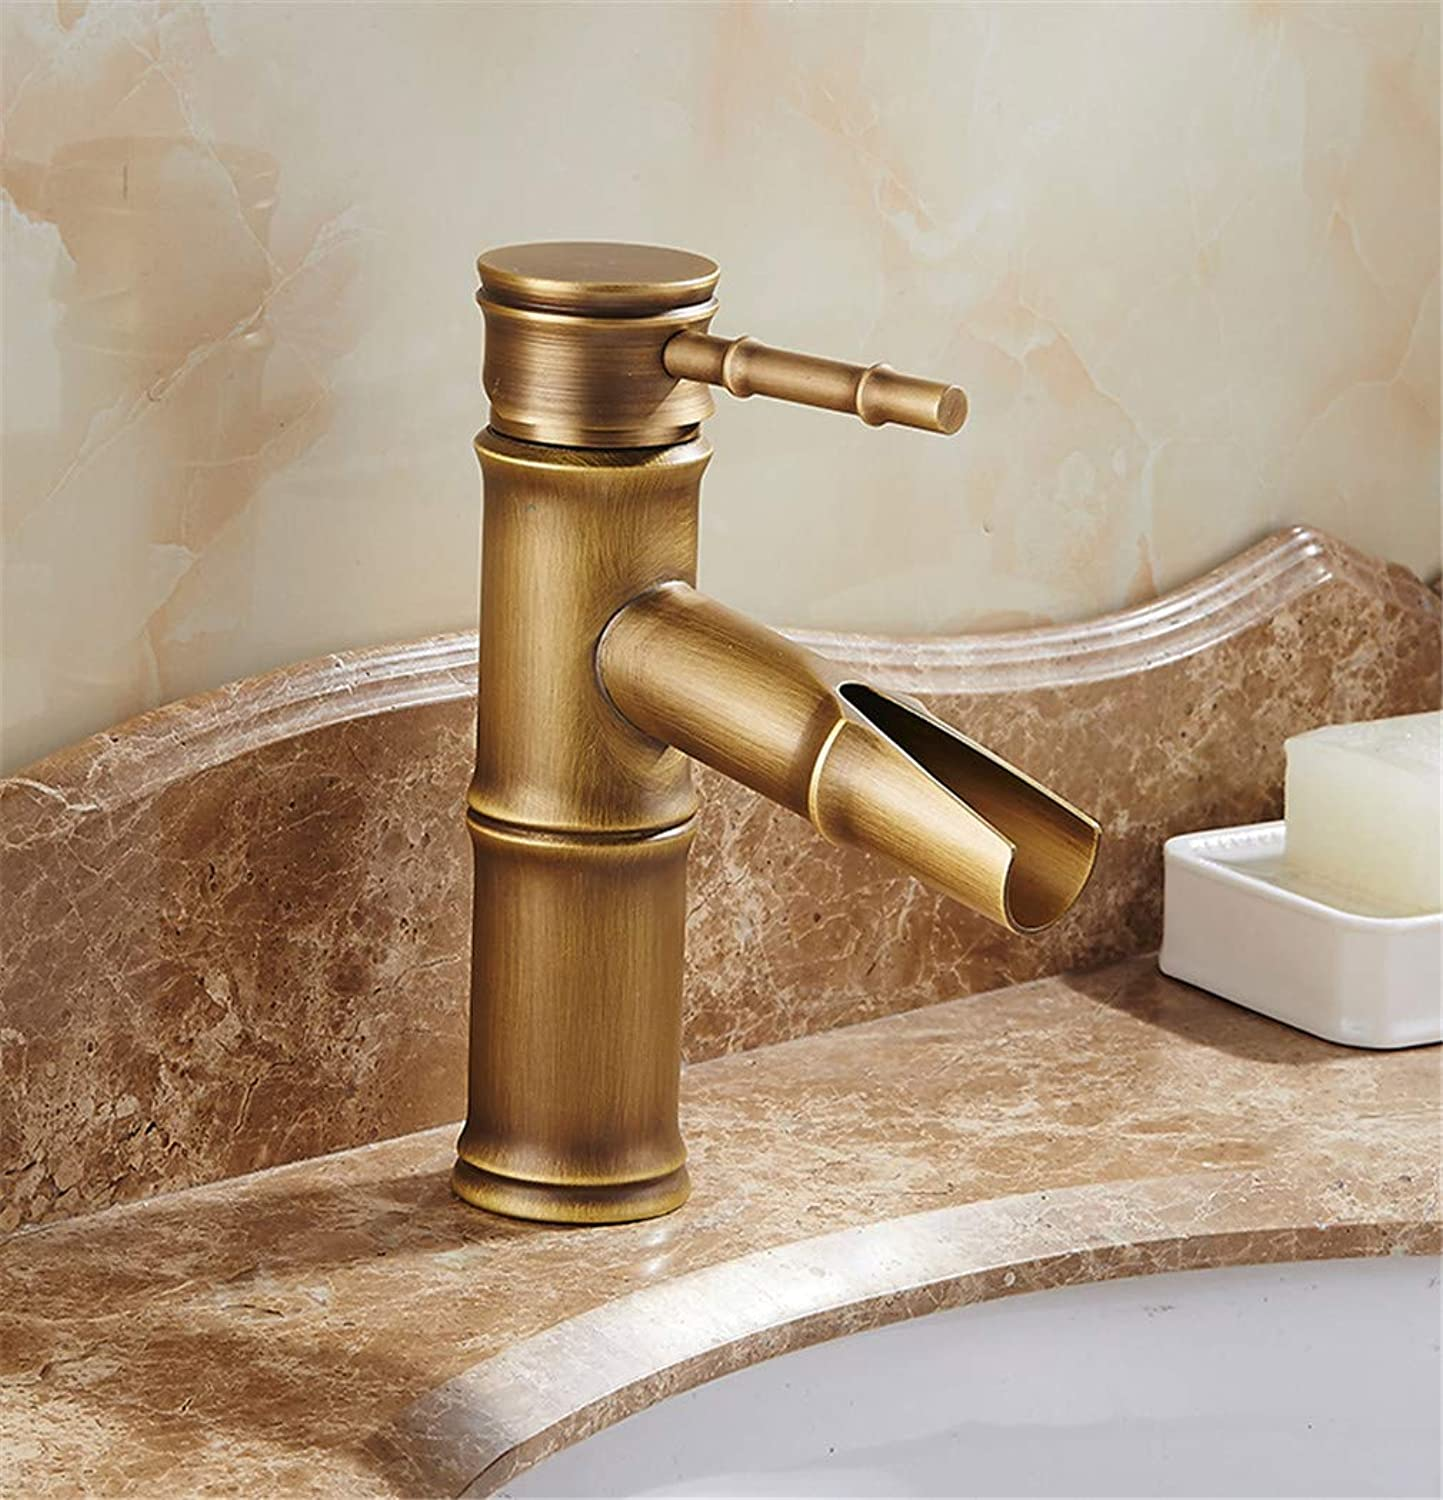 Antique Bamboo Bathroom Faucet Antique Bronze Finish Brass Basin Sink Faucet Single Handle Bamboo Water Tap Shower tap